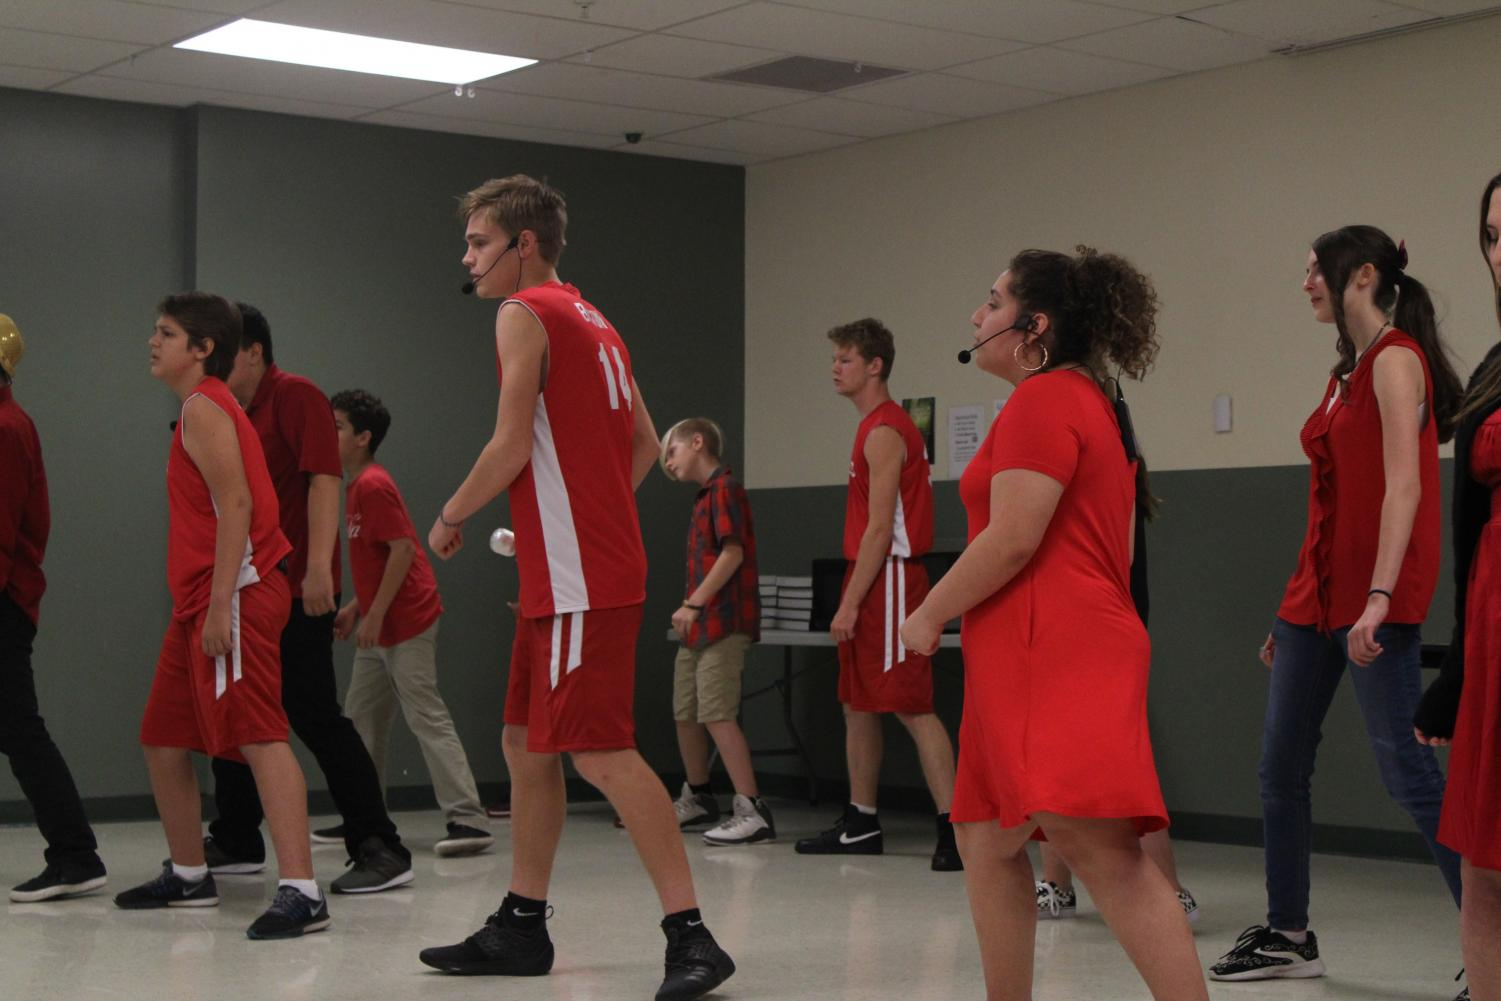 High School Musical Jr. cast performs the song